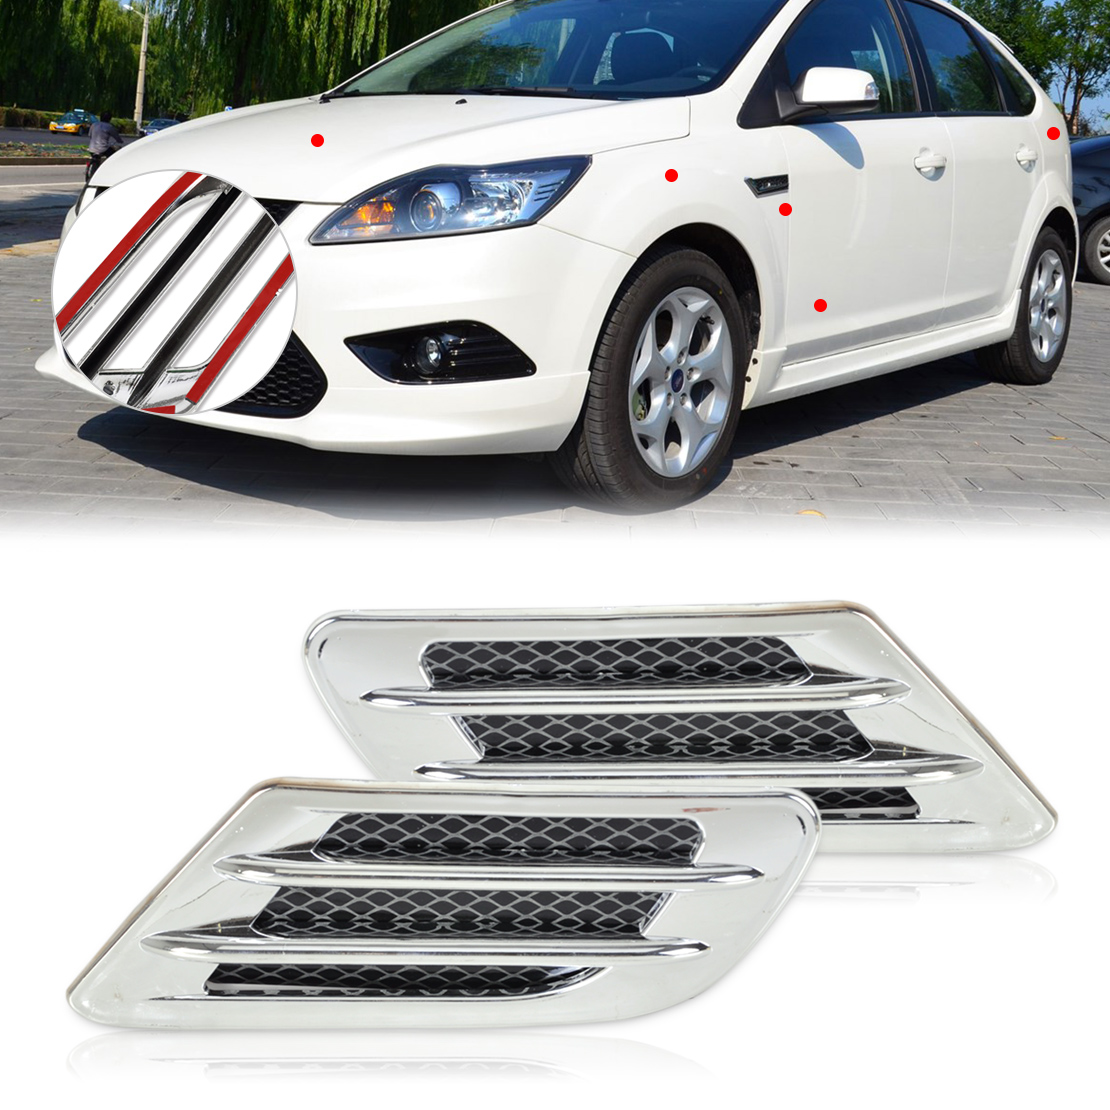 DWCX Car Side Air Vent Fender Cover Hole Intake Duct Flow Grille Sticker Trim For Mercedes Honda Nissan Hyundai Kia VW Audi 2017 chromed abs plastic car side air vent fender cover sticker for toyota camry solara celica celsior century corolla fielder